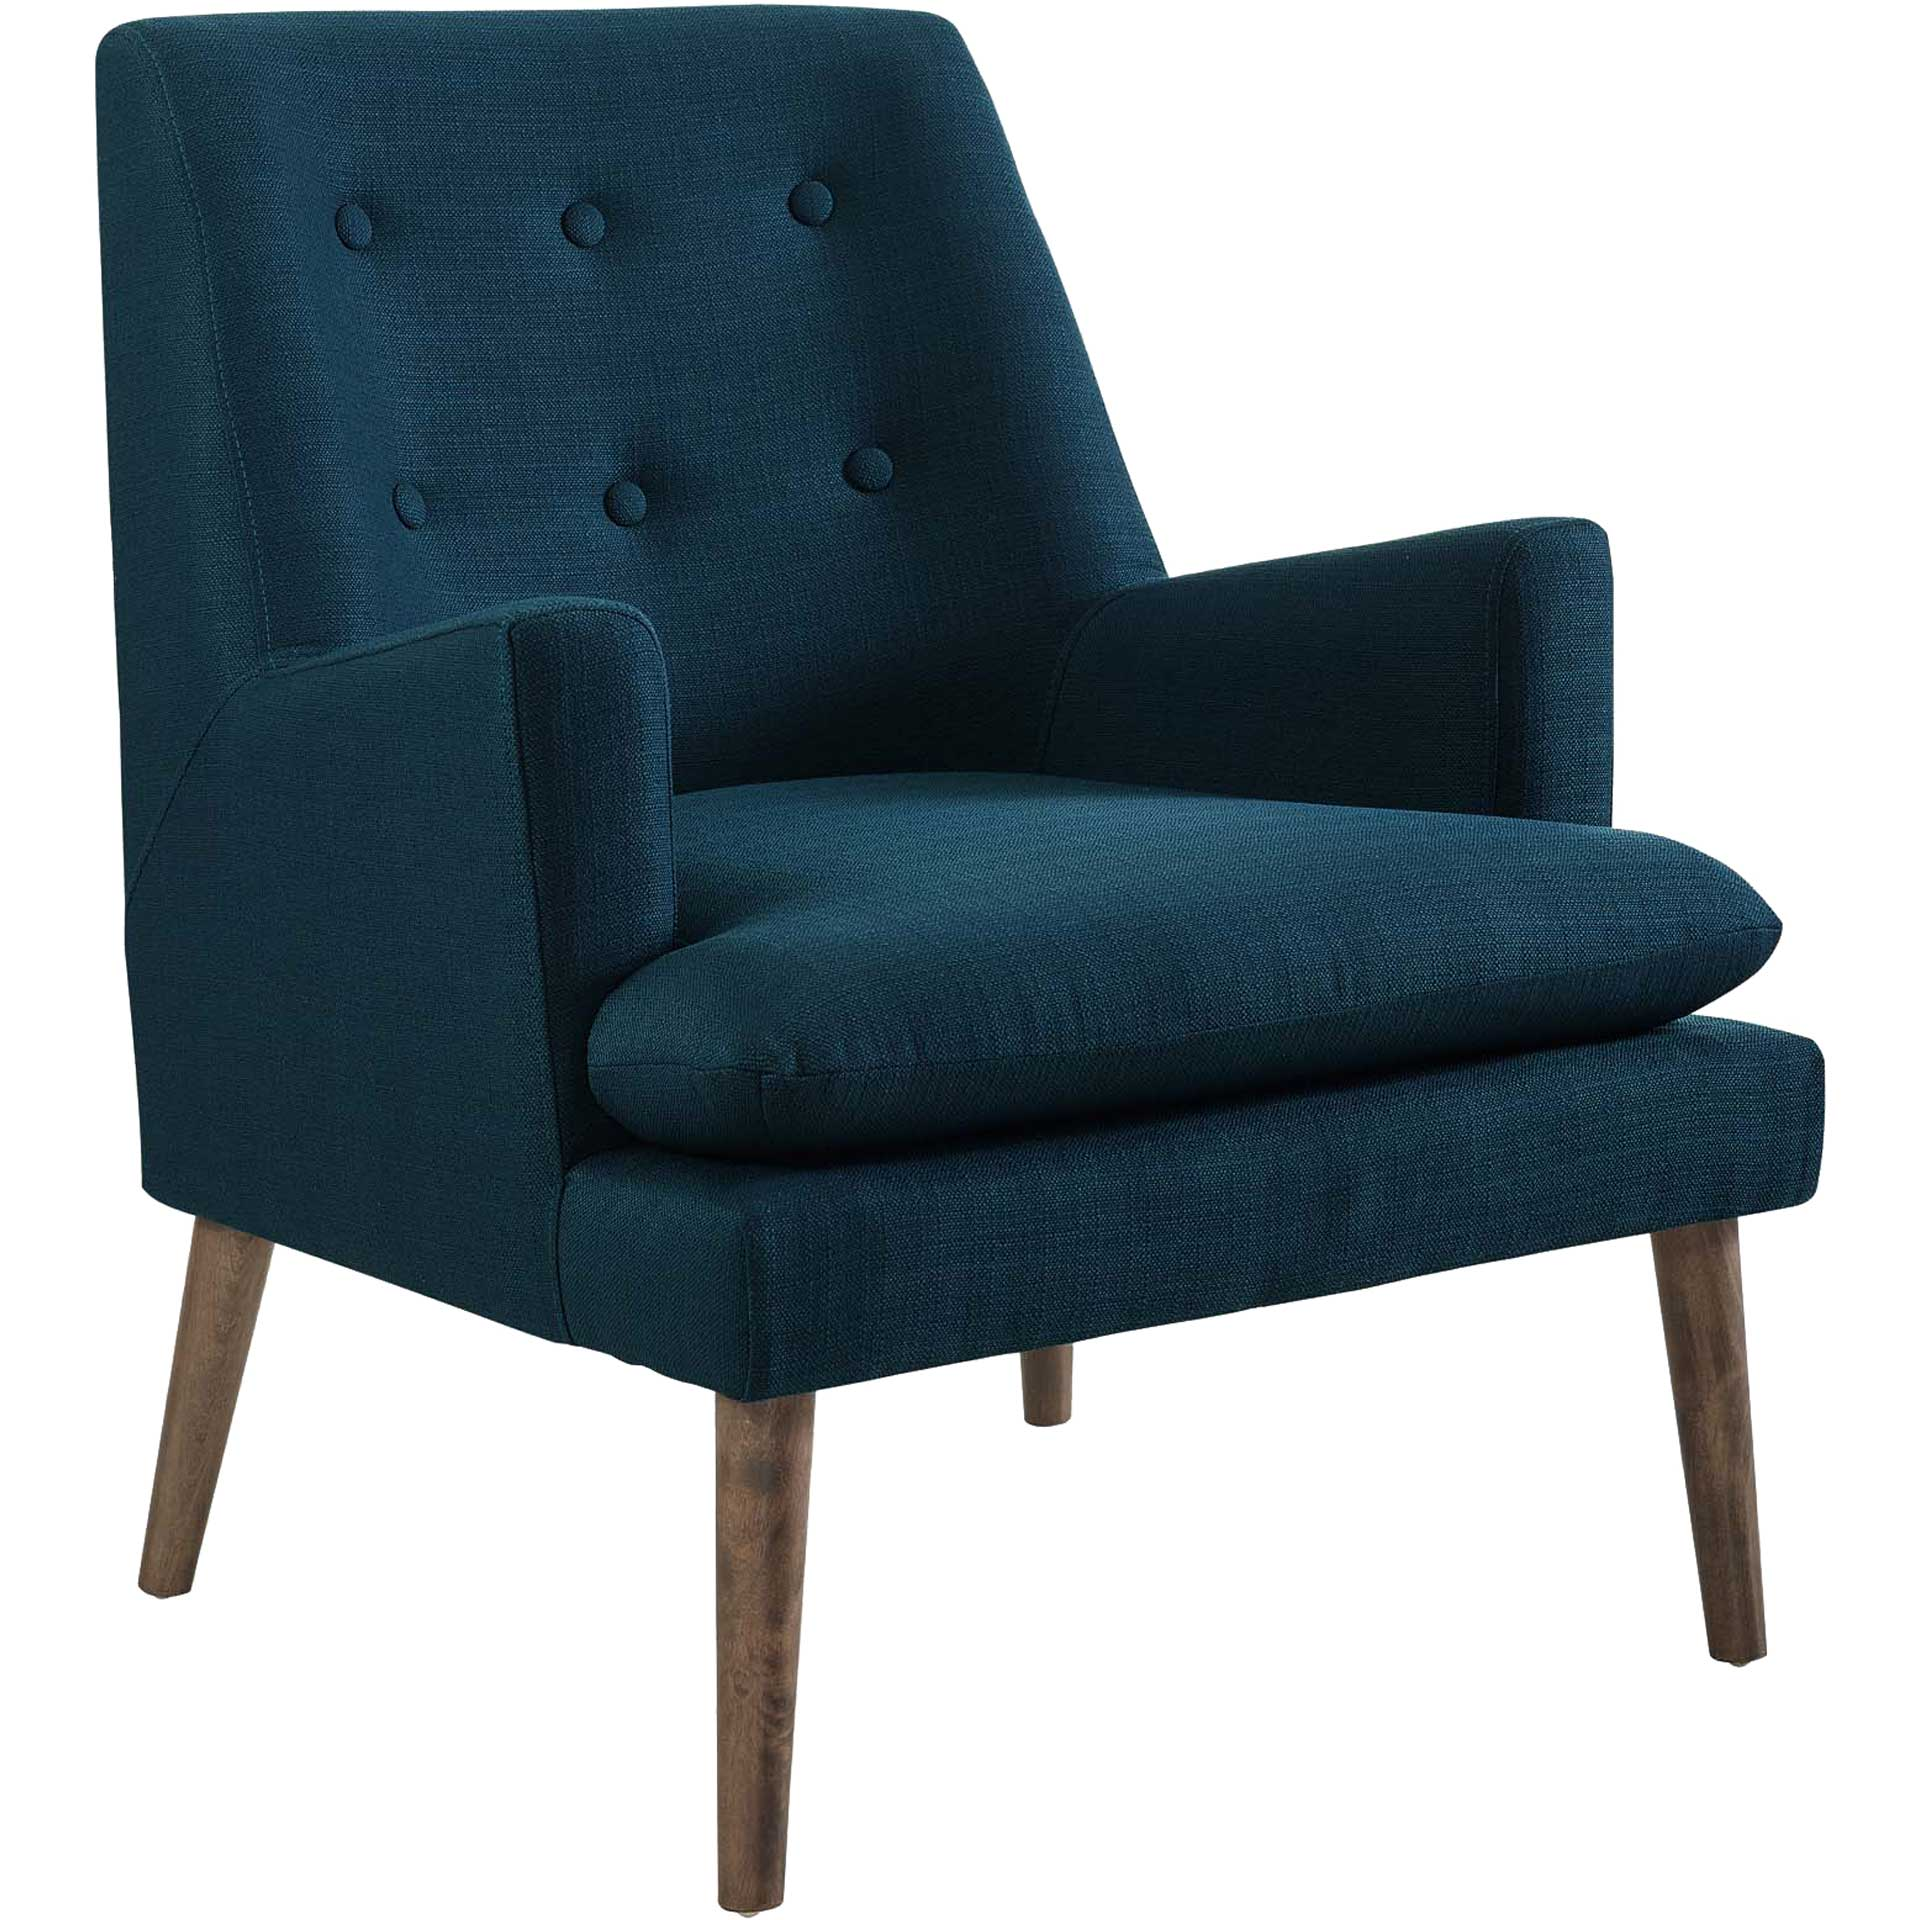 Lucas Upholstered Lounge Chair Azure